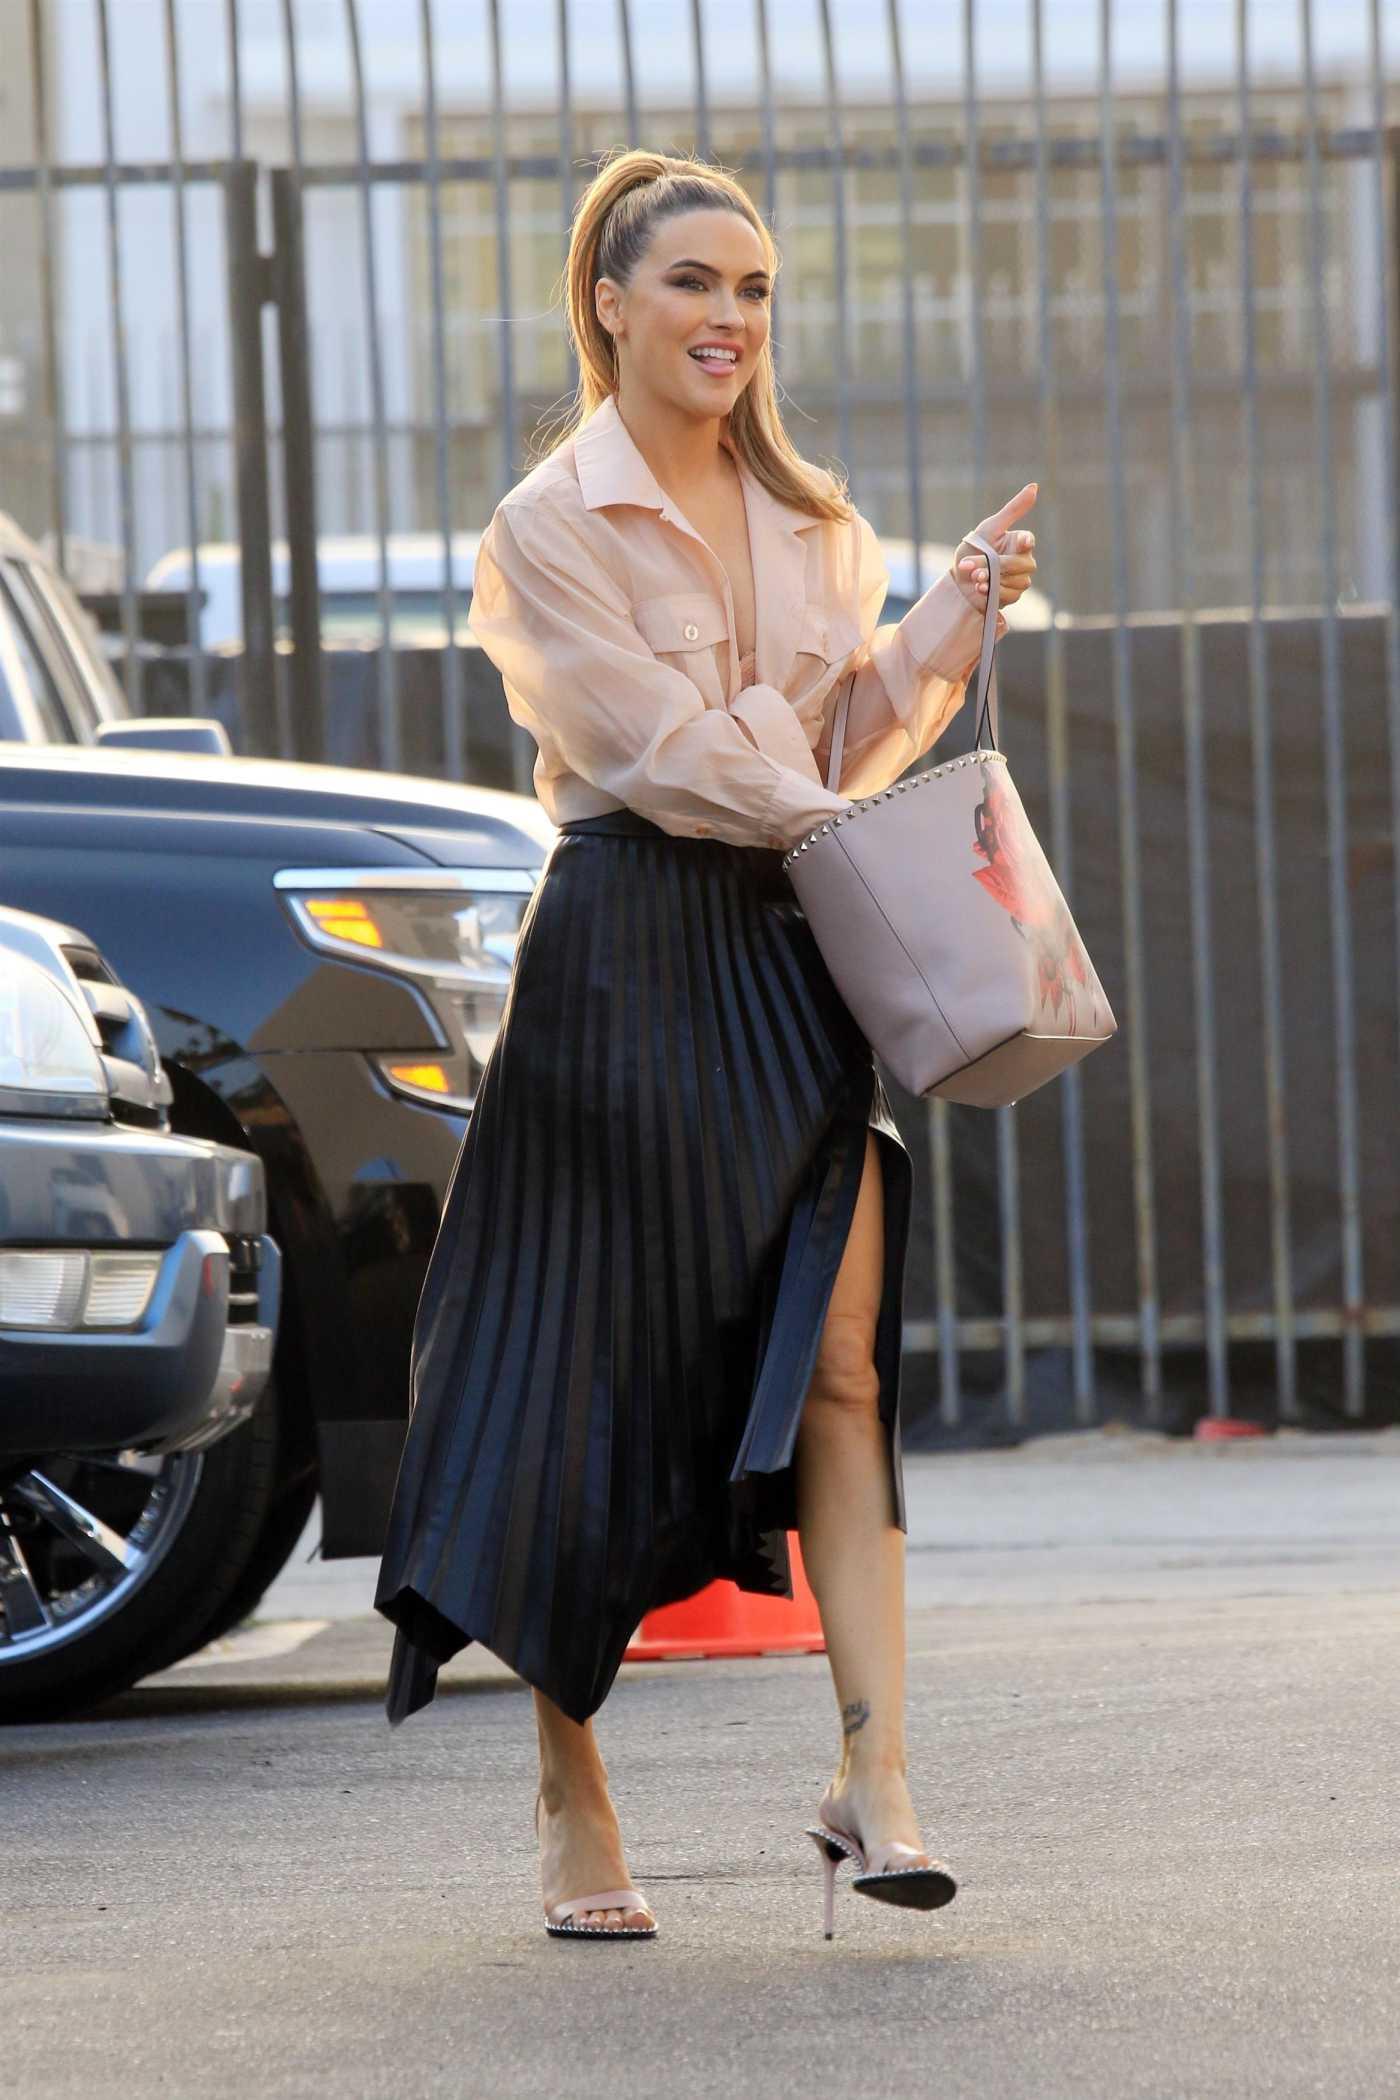 Chrishell Stause in a Black Skirt Arrives at the DWTS Studio in Los Angeles 10/21/2020